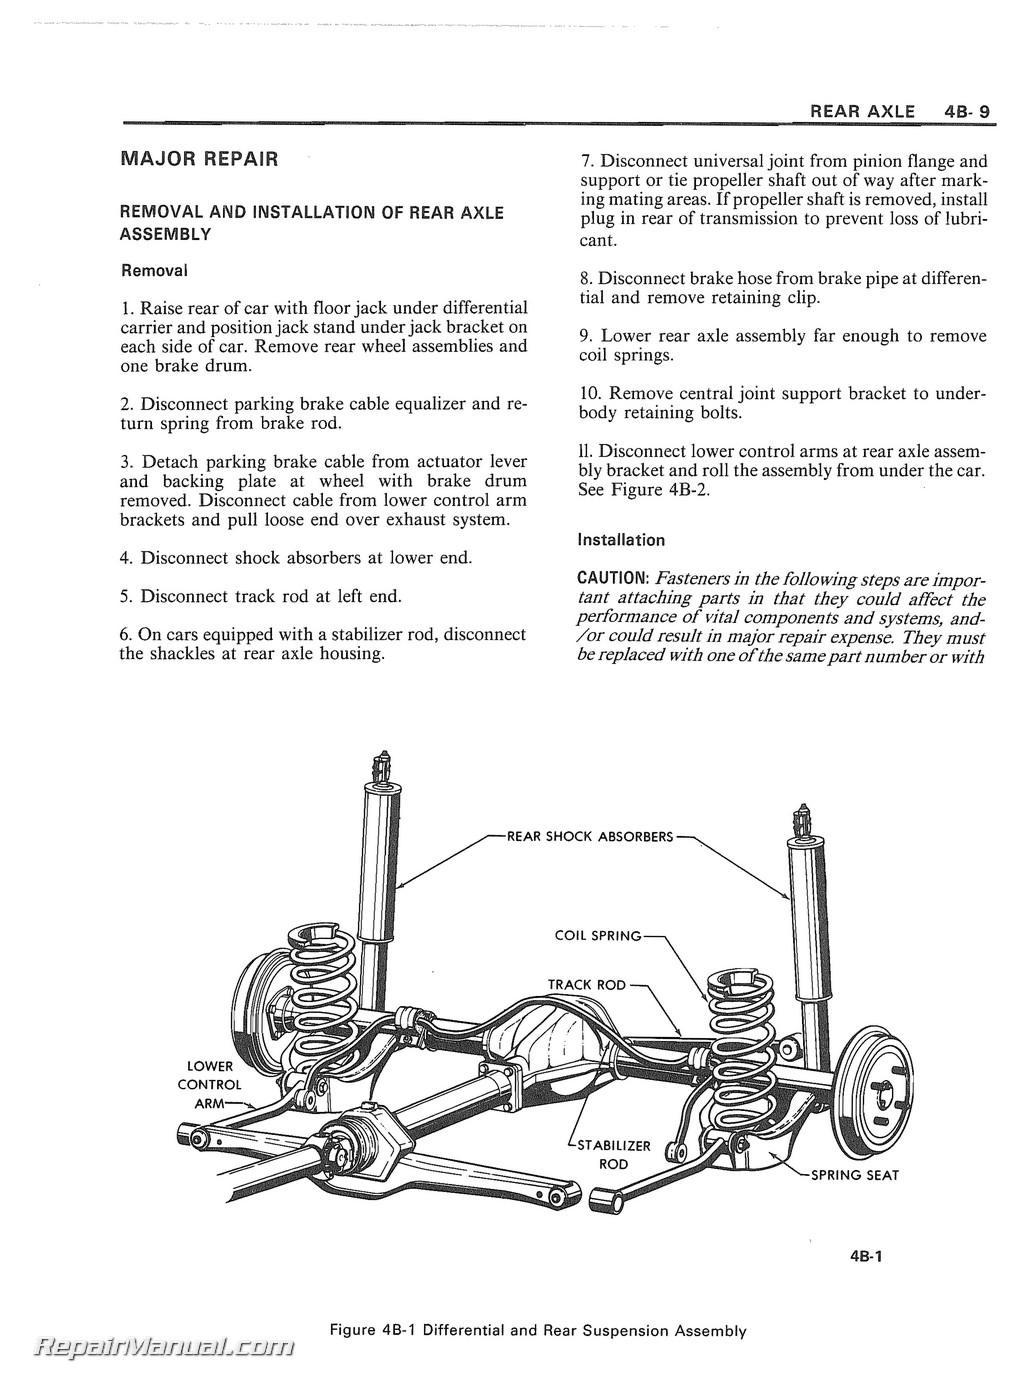 1973 opel 1900 manta and gt service manual opel c20ne wiring diagram #7